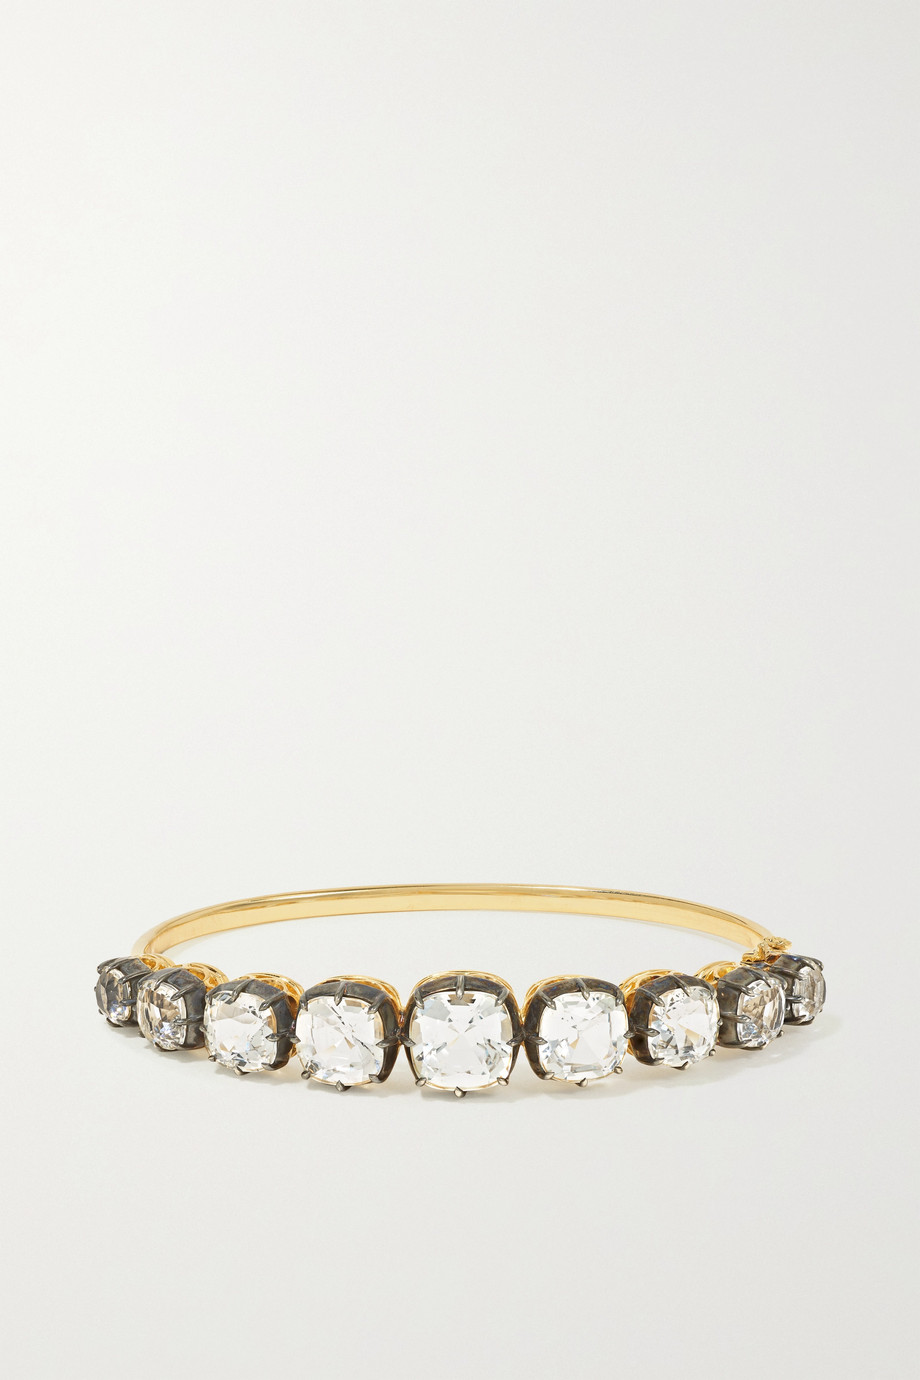 Fred Leighton Collection sterling silver-topped 18-karat gold topaz bracelet